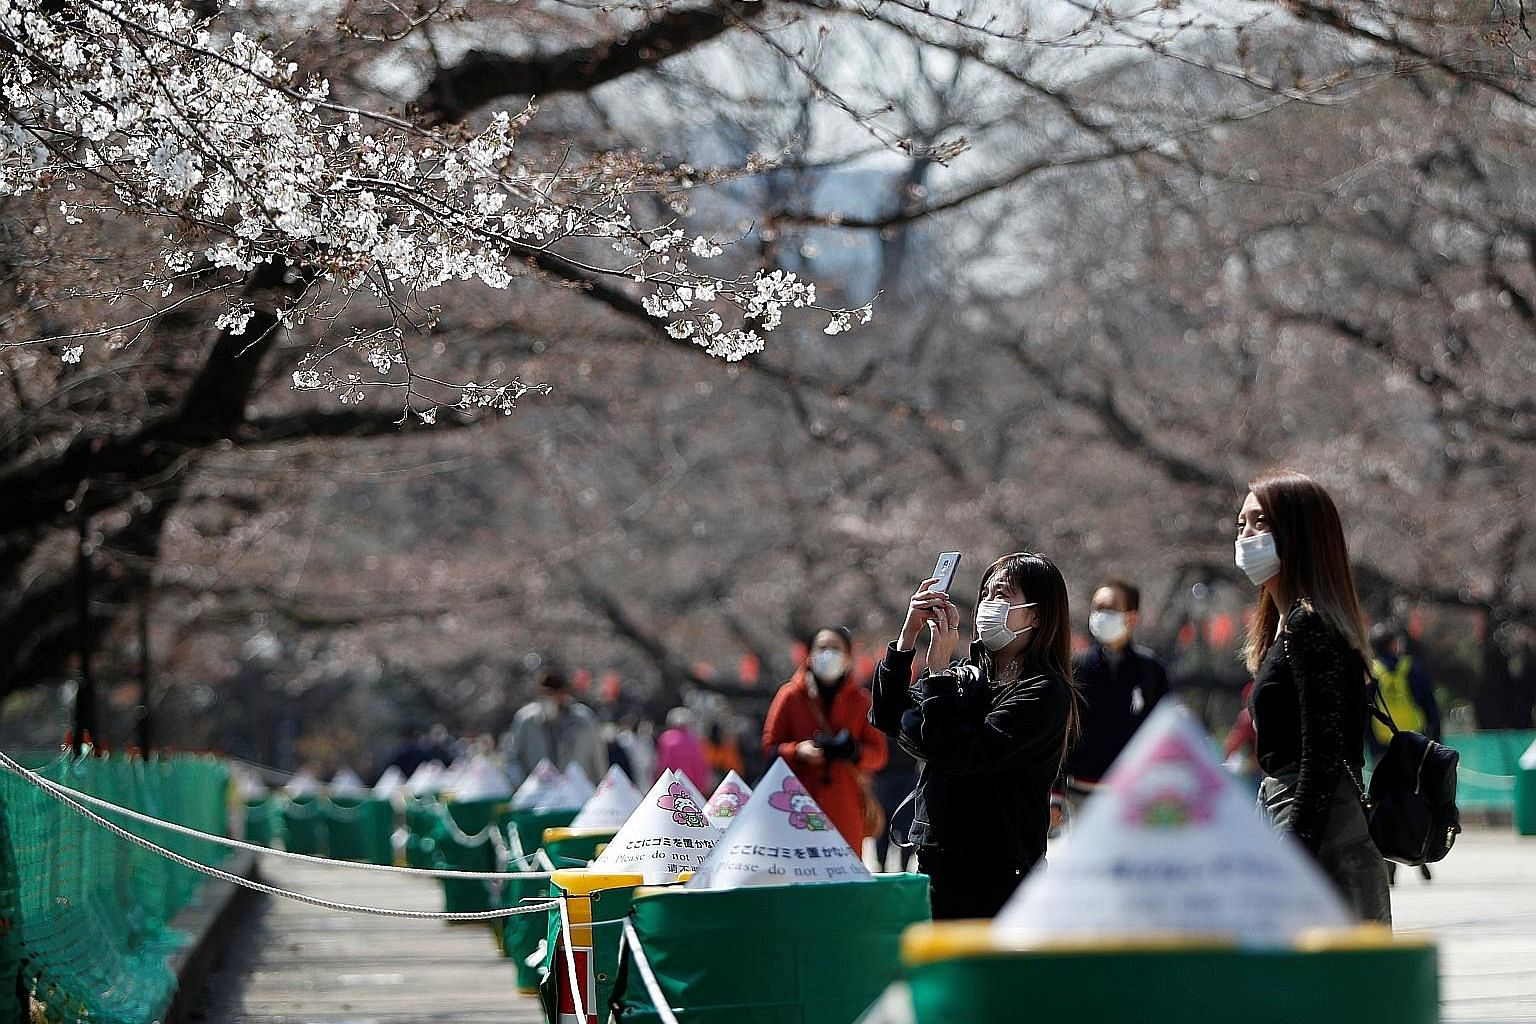 Visitors viewing cherry blossoms next to an area cordoned off, to prevent gatherings, at Ueno Park in Tokyo yesterday. Hanami (cherry blossom viewing) picnics and gatherings are traditionally popular across Japan, although some of the most visited ar